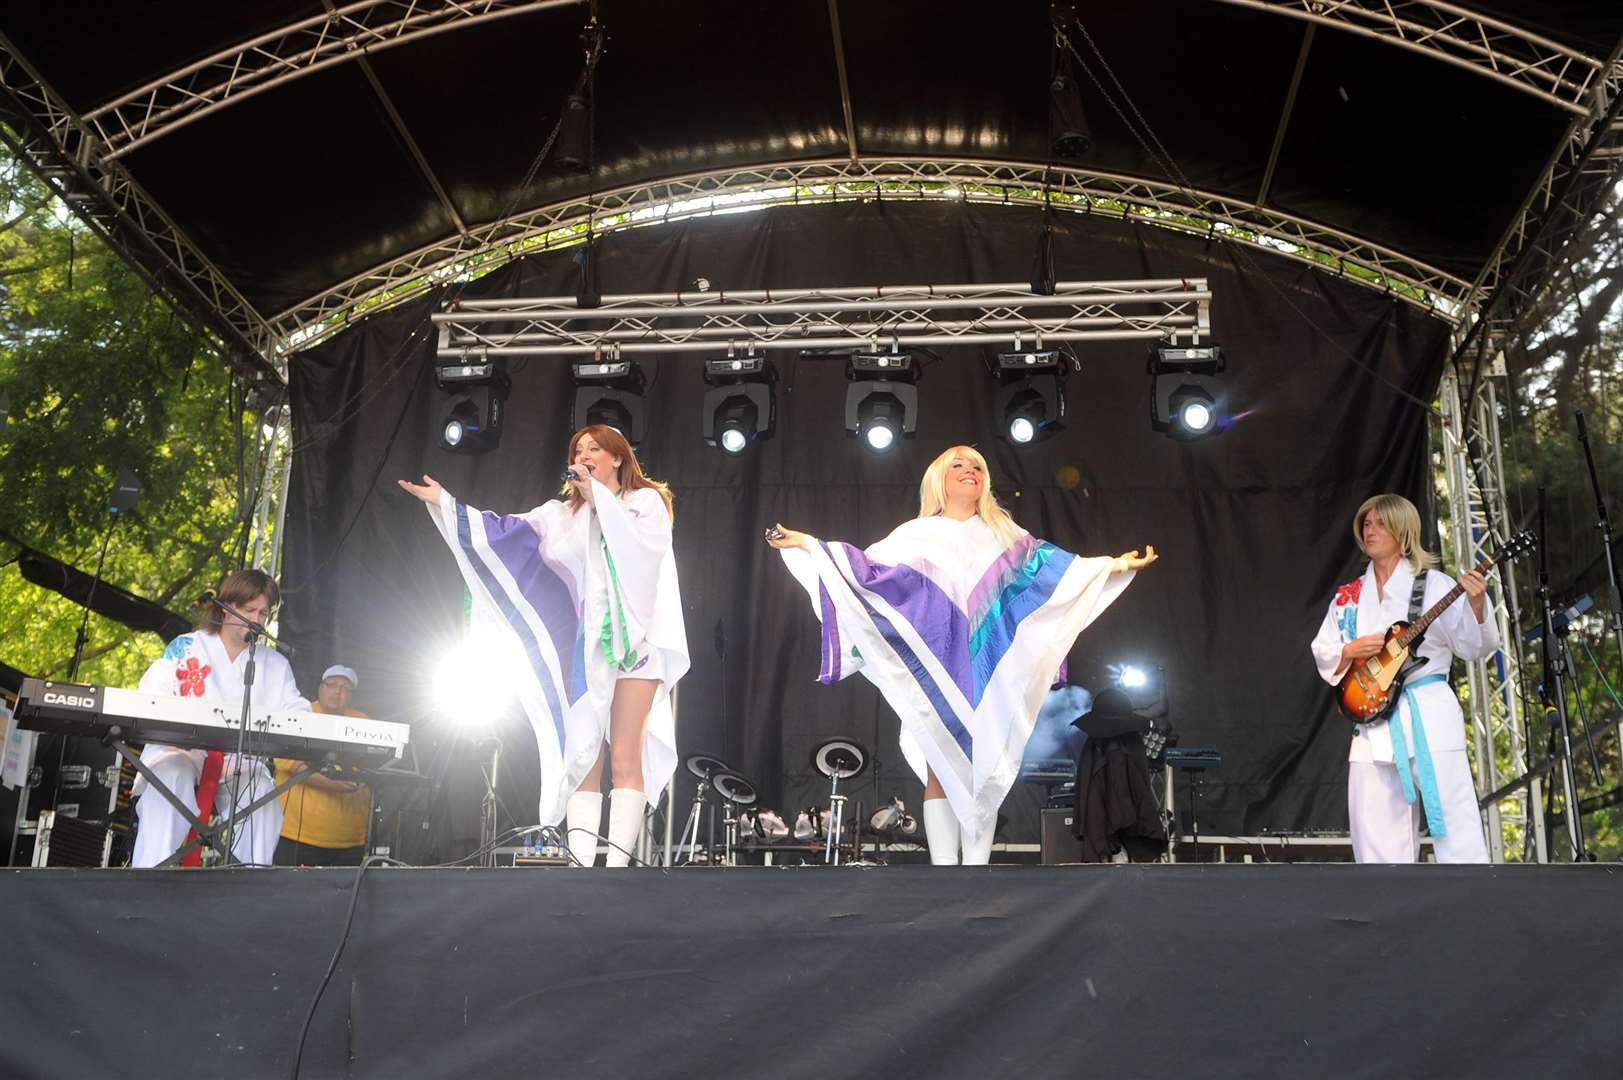 The two-day event celebrates tribute acts, such as ABBA Pictures by Mecha Morton